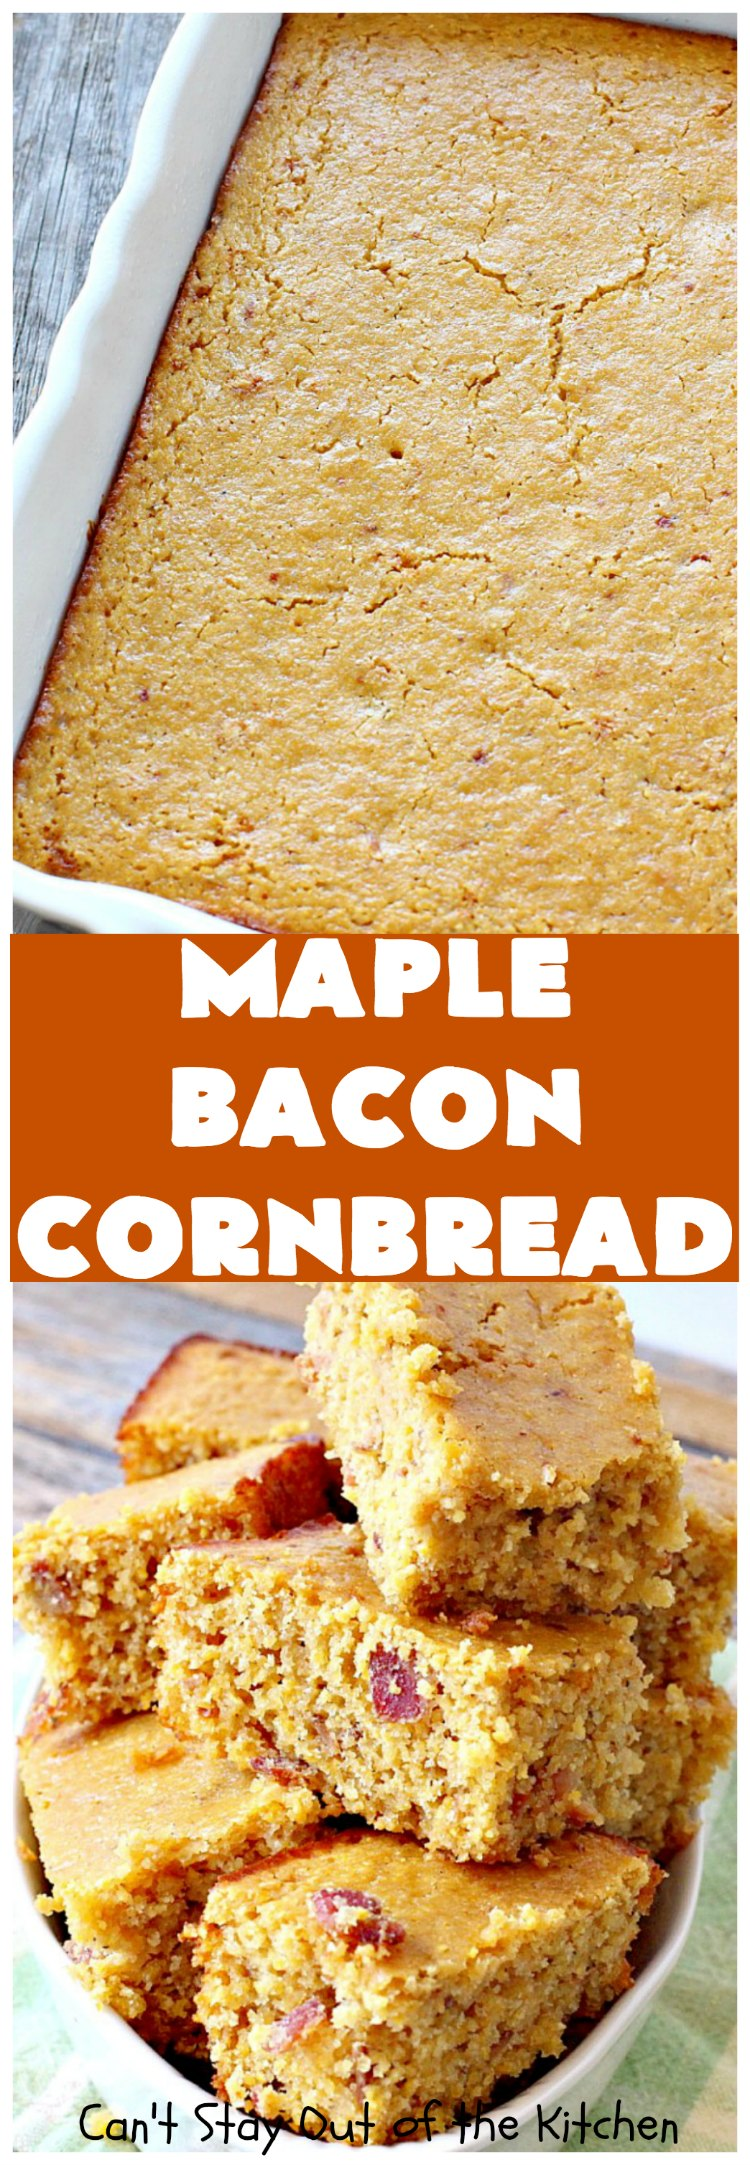 Maple Bacon Cornbread | Can't Stay Out of the Kitchen